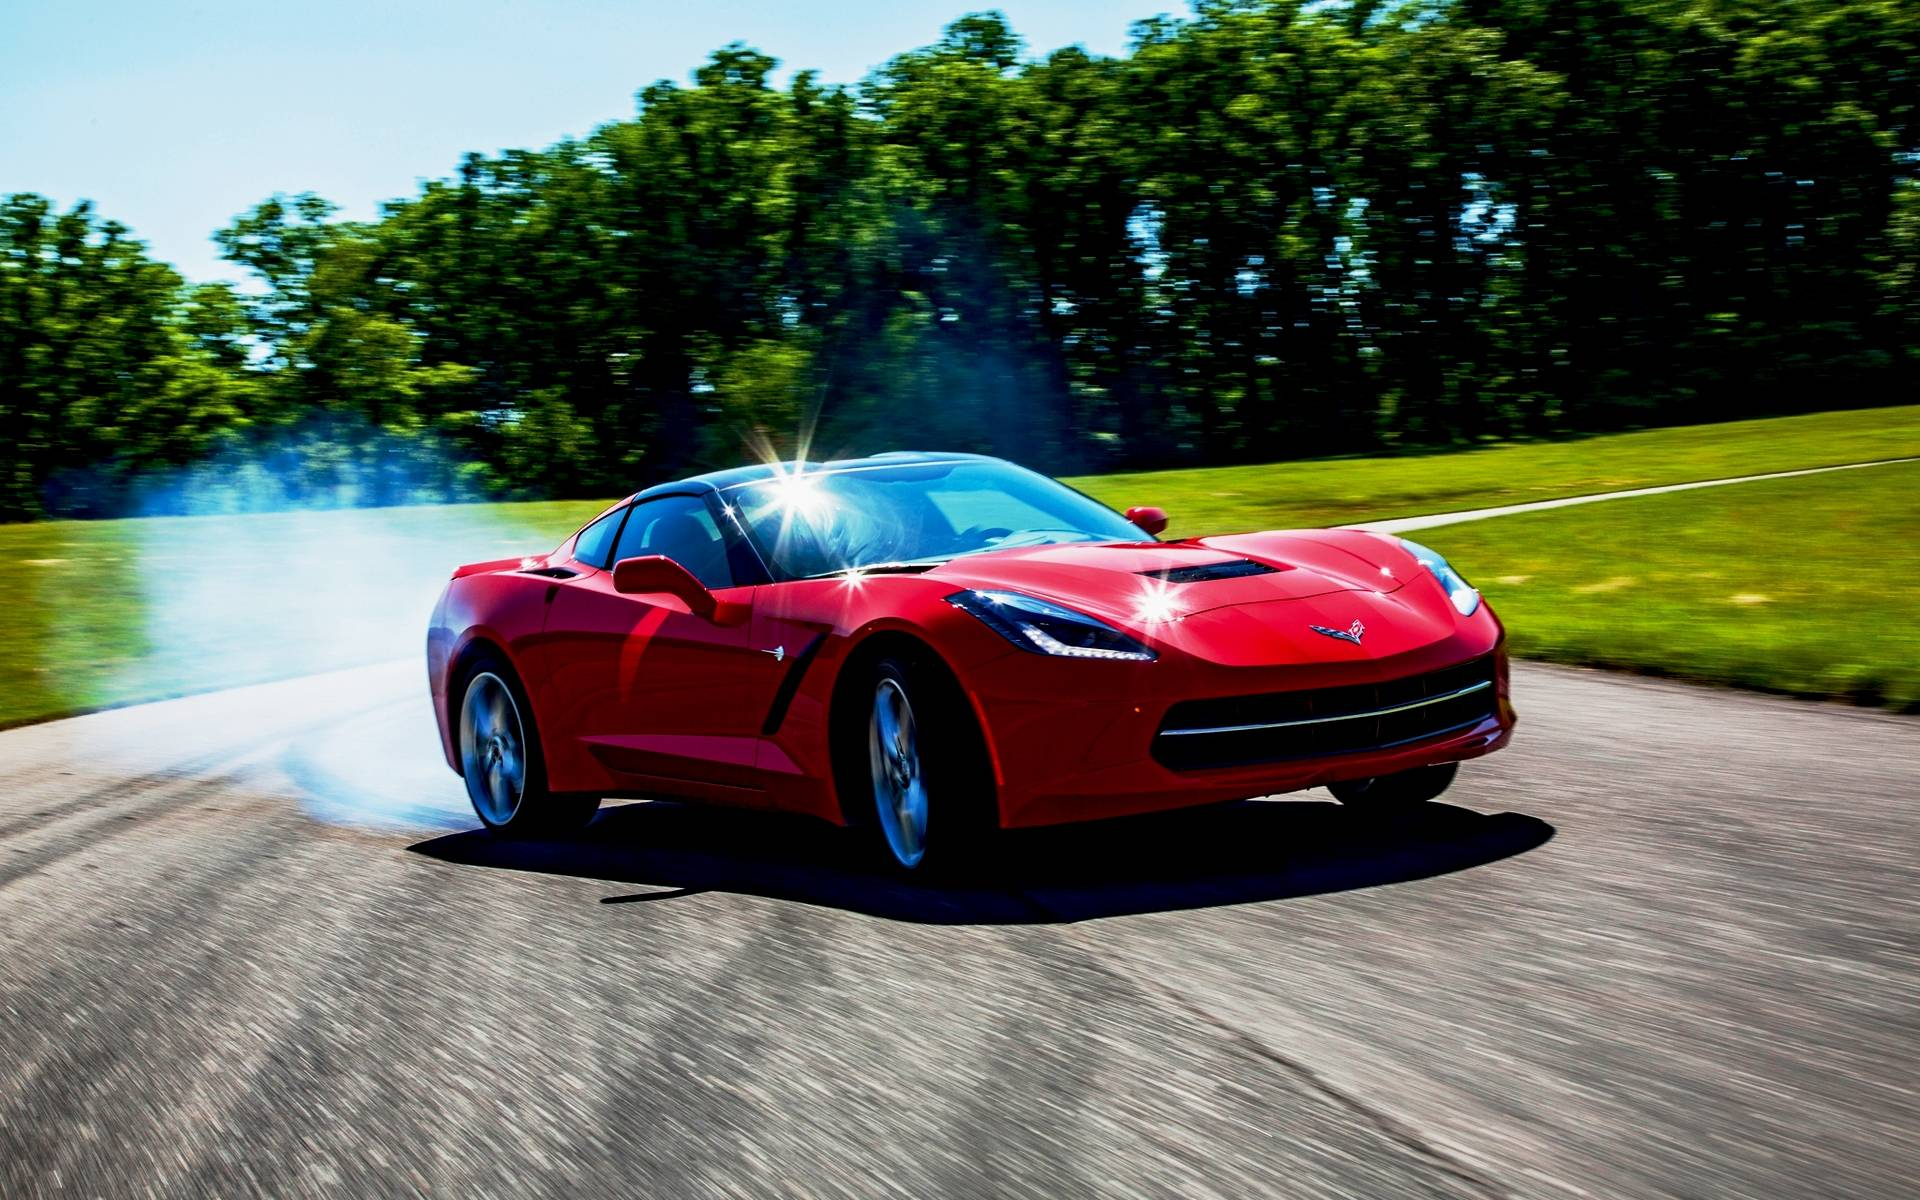 Corvette Stingray 2015 Wallpapers HD Wallpaper Cave